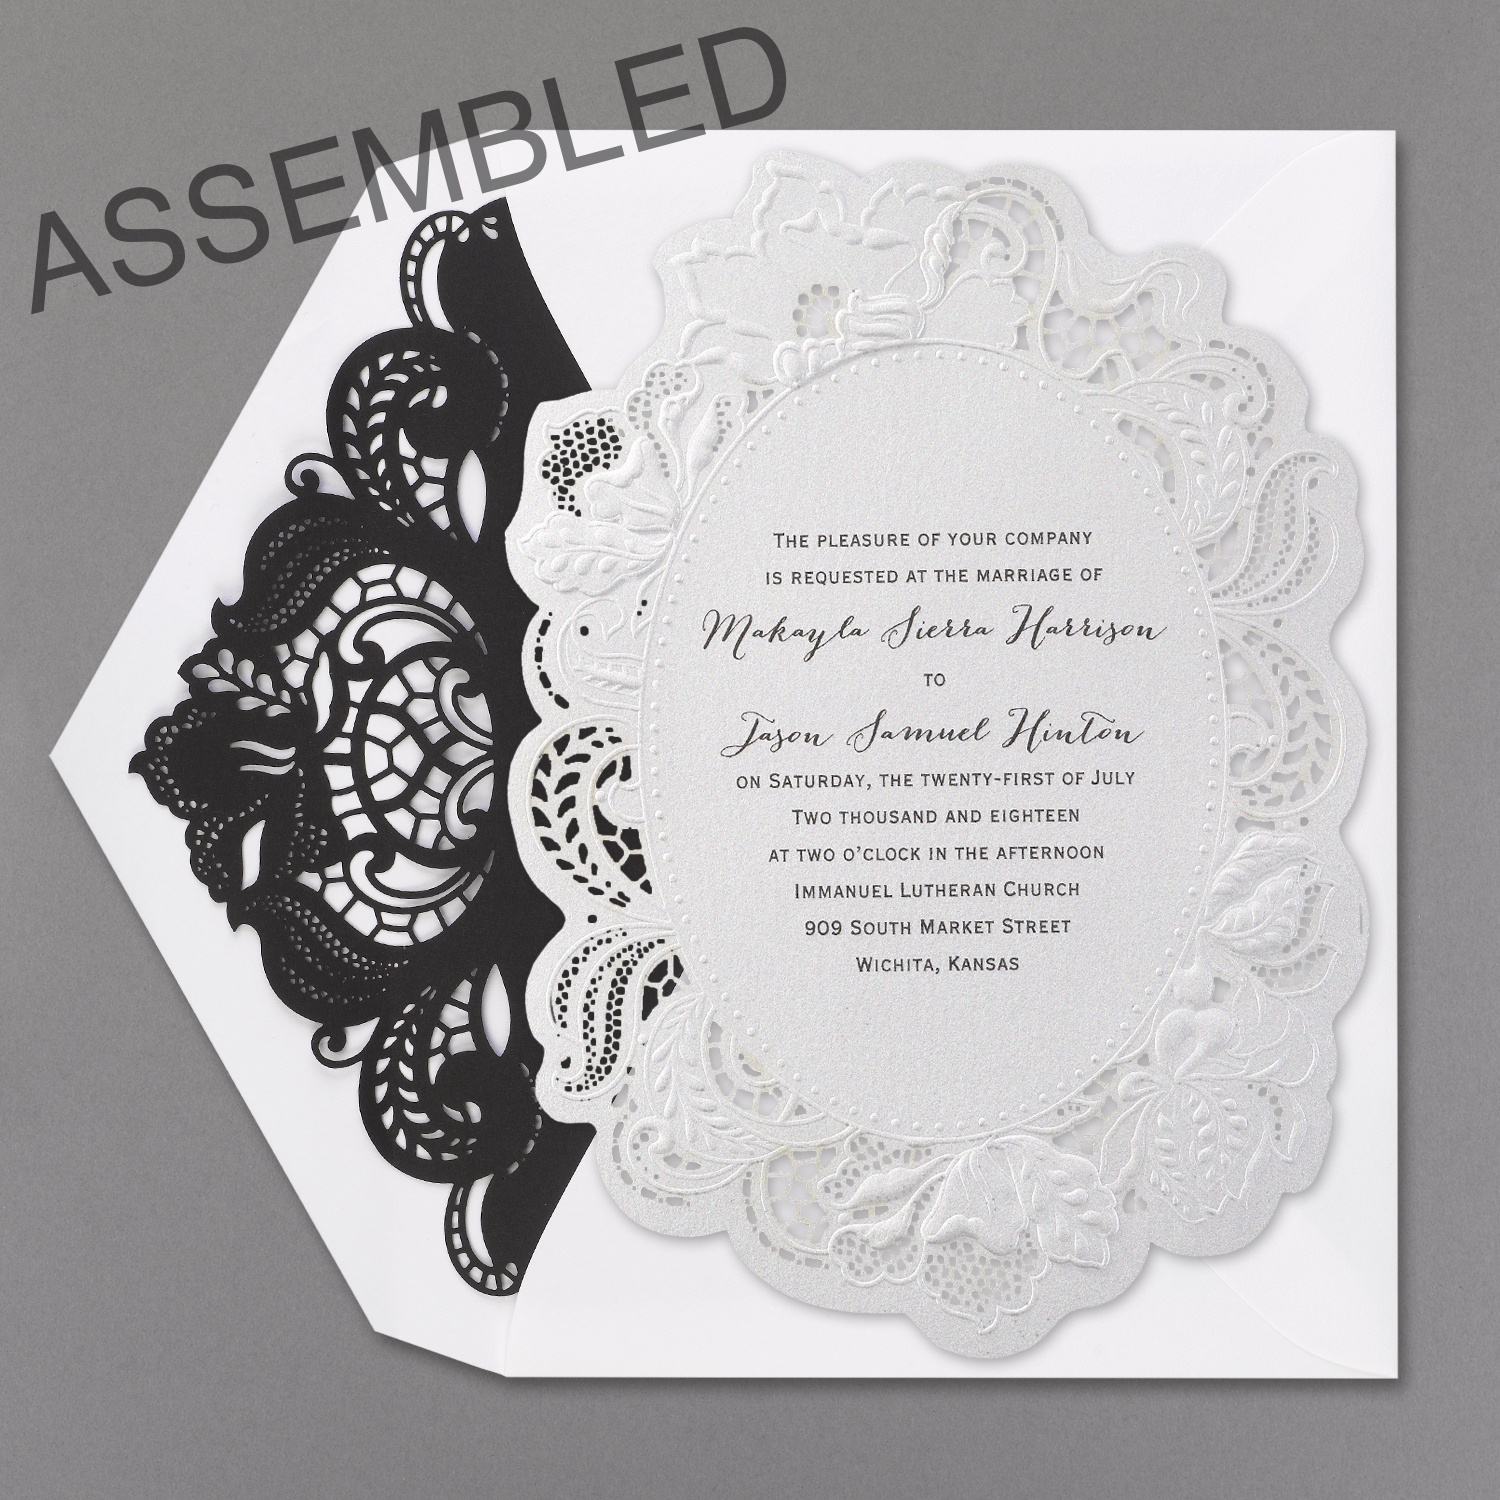 Wedding Invitation News: Paper Lace Wedding Invitations with a ...